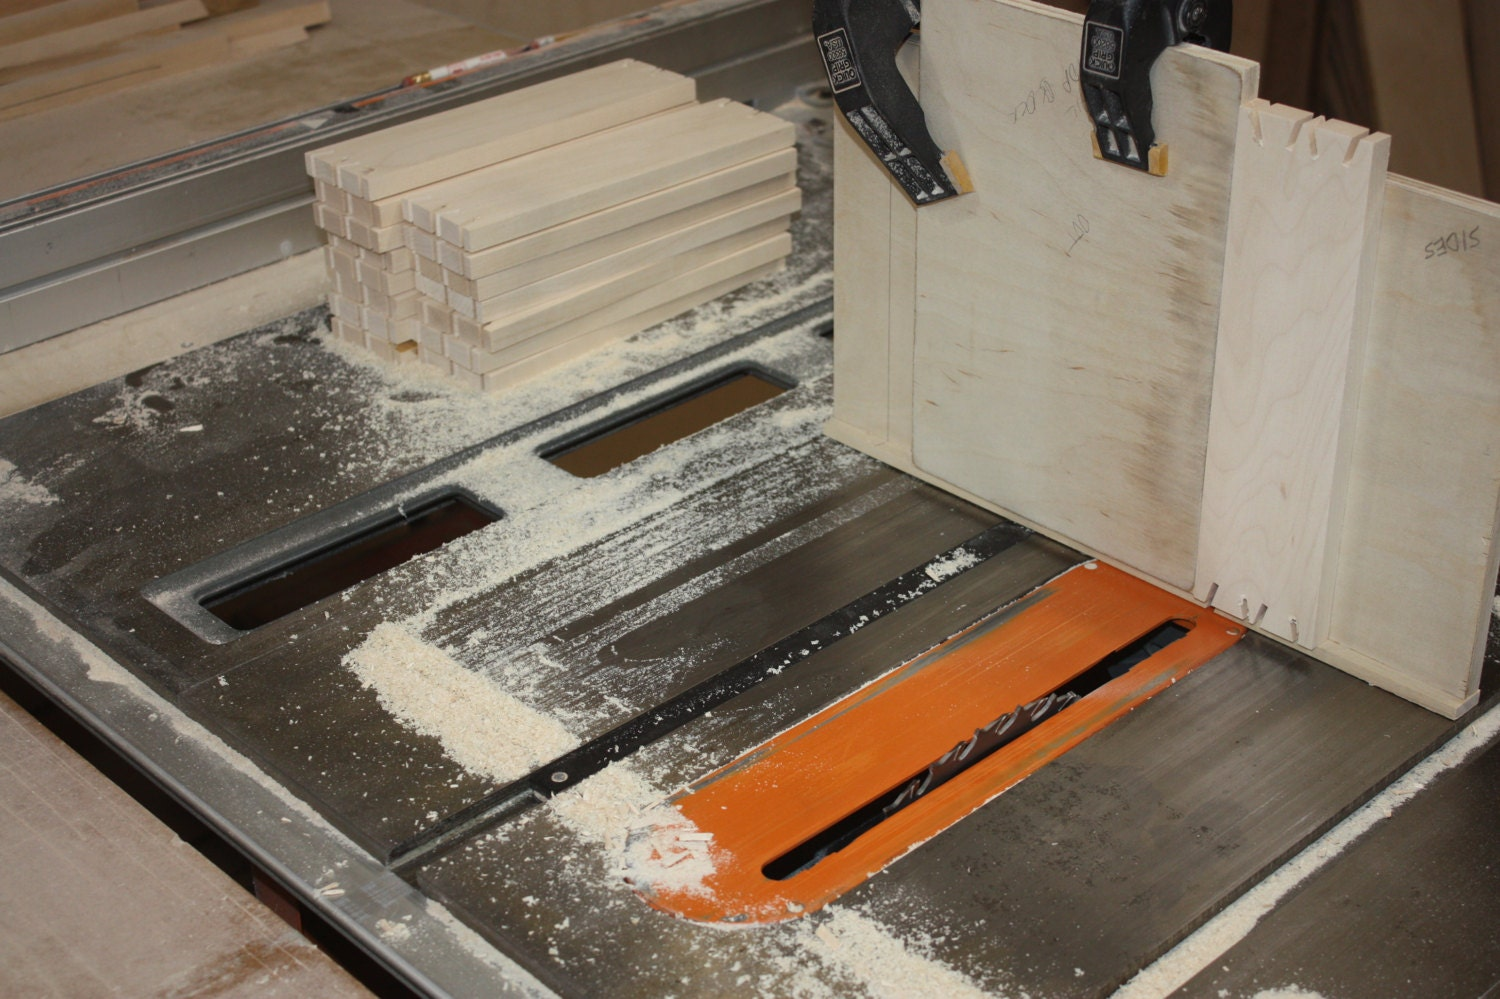 Cutting Dovetails on a Tablesaw